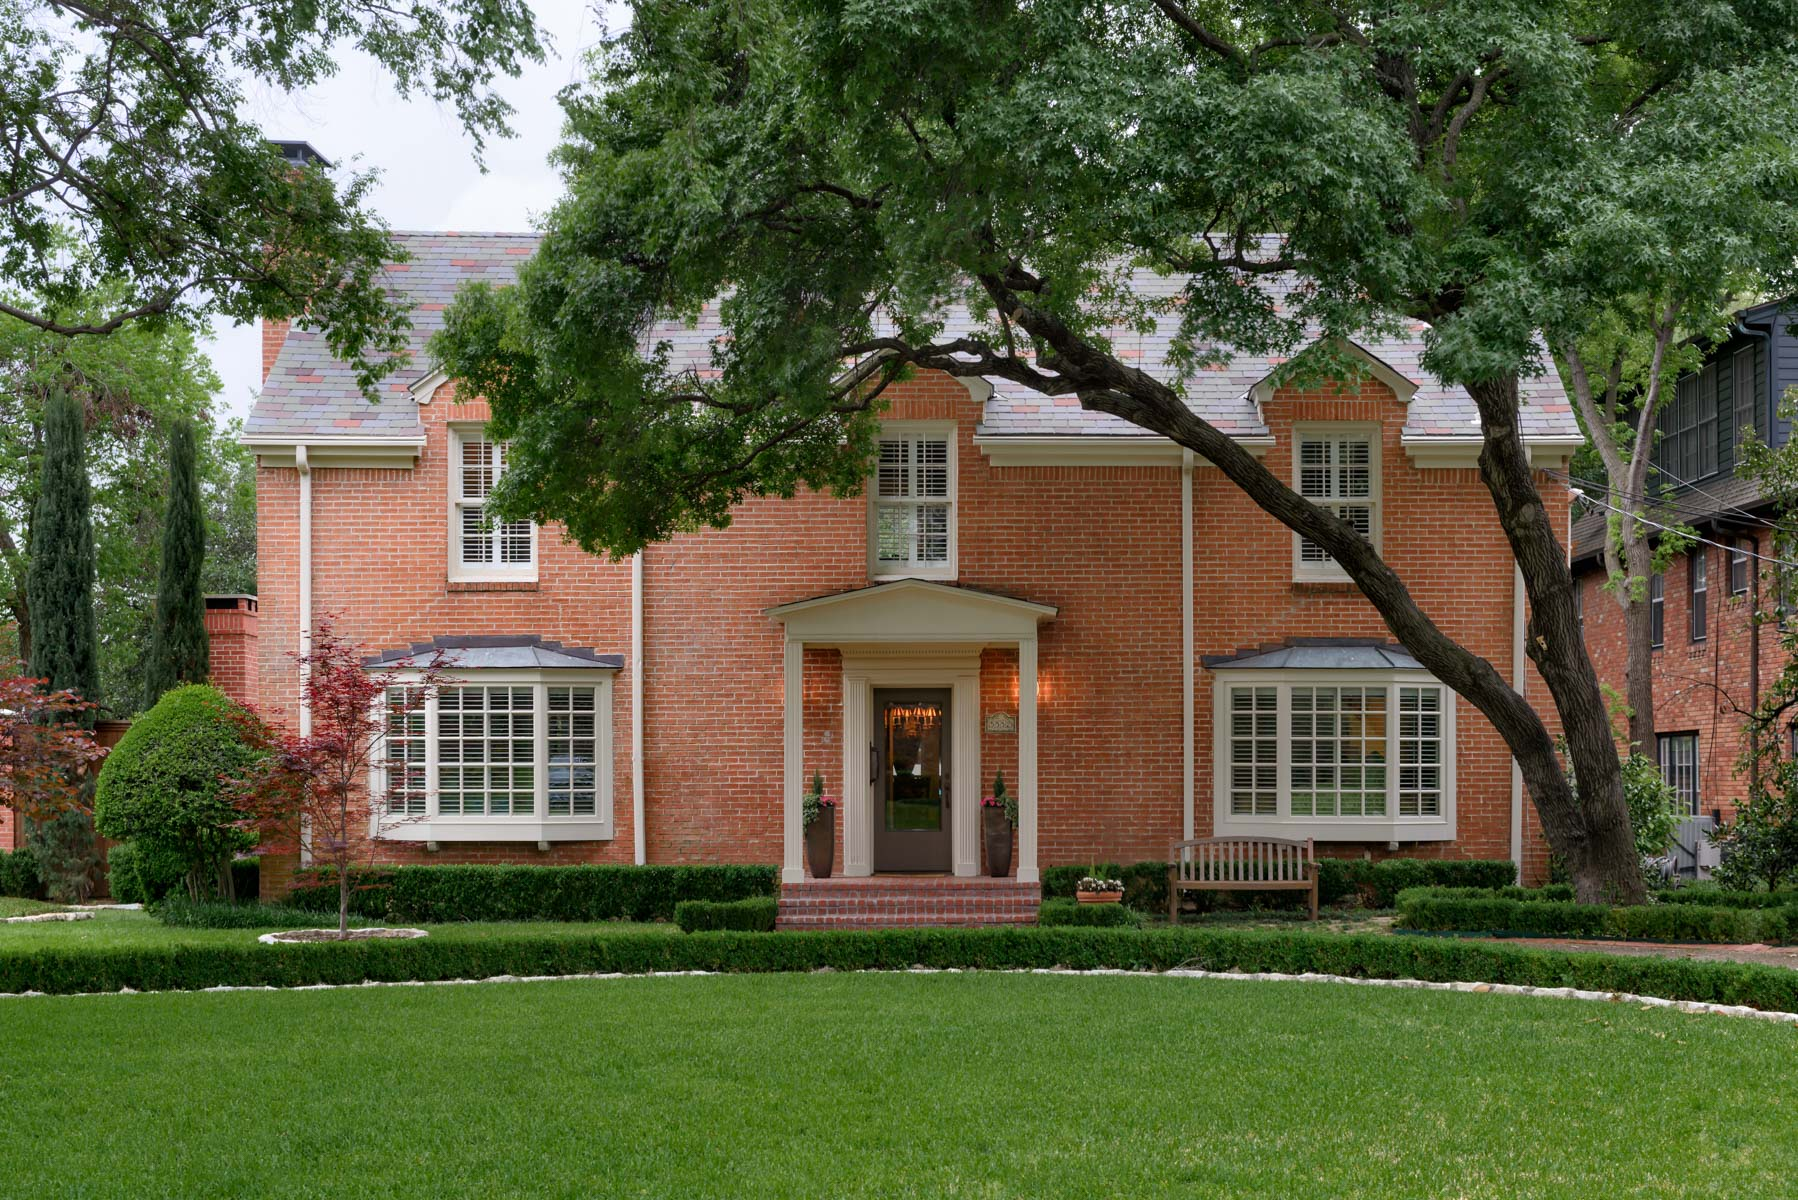 Maison unifamiliale pour l Vente à Charming Greenway Parks Traditional 5552 Drane Dr Dallas, Texas, 75209 États-Unis